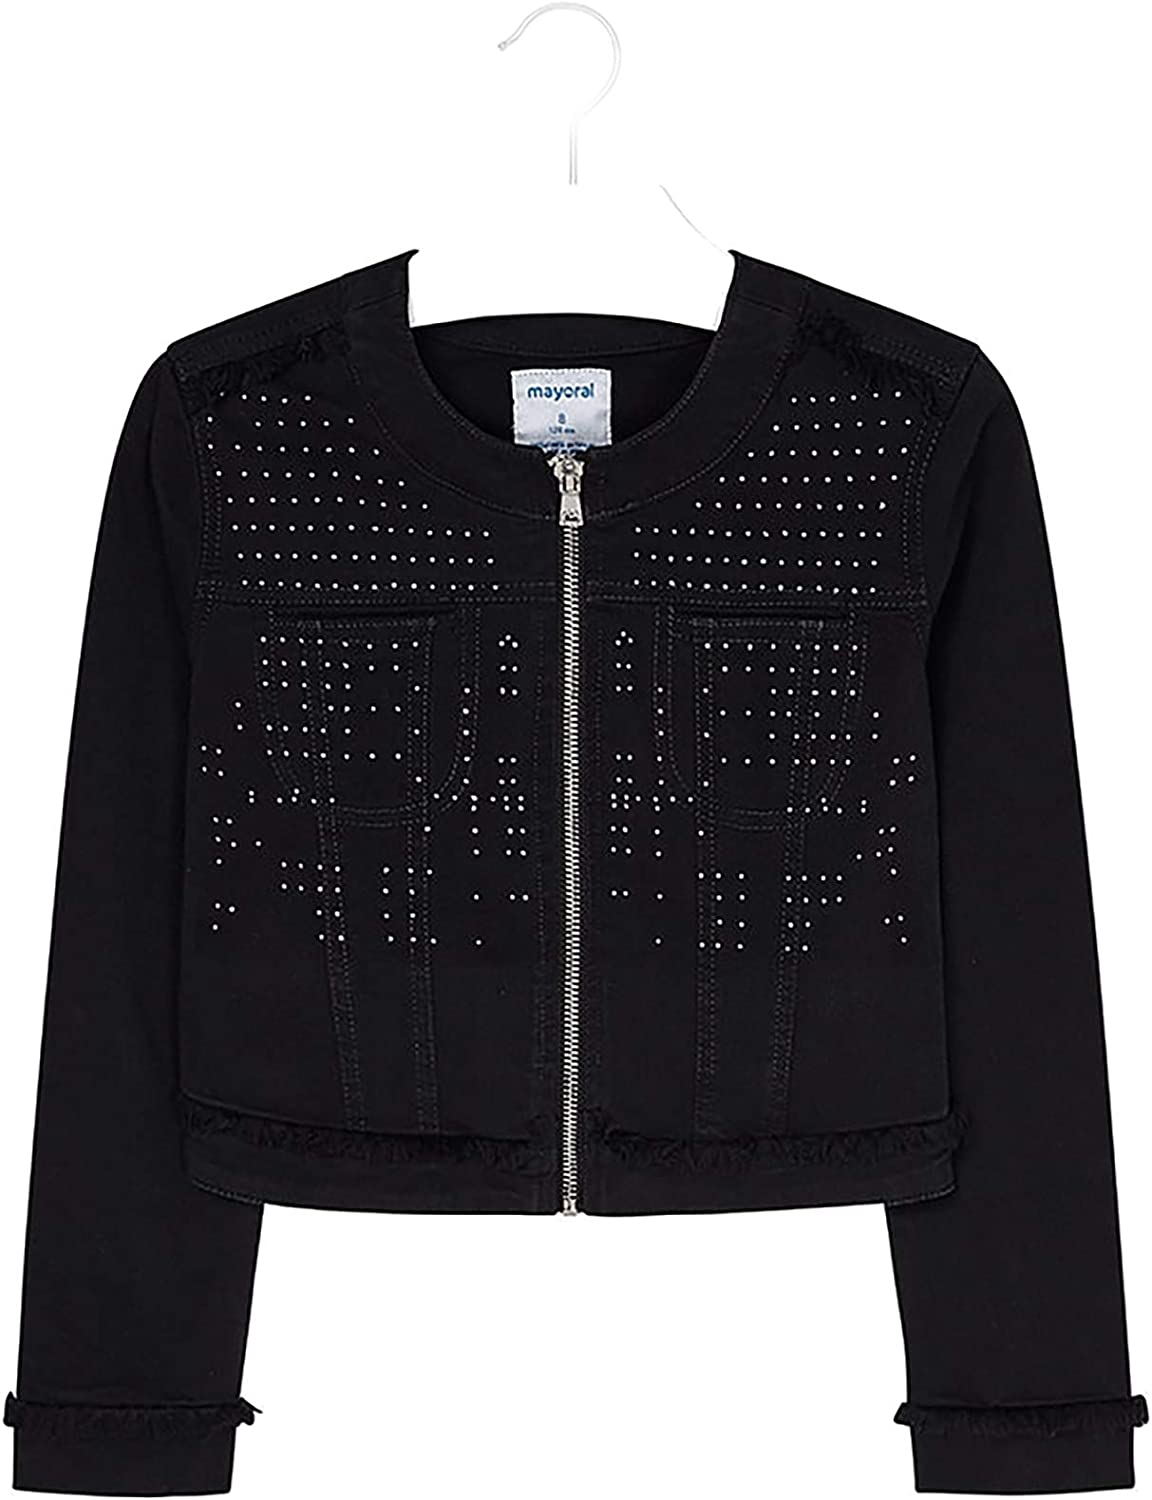 Mayoral - Twill Jacket Applique Girls Black 6408 for Spring new work one after another Max 77% OFF